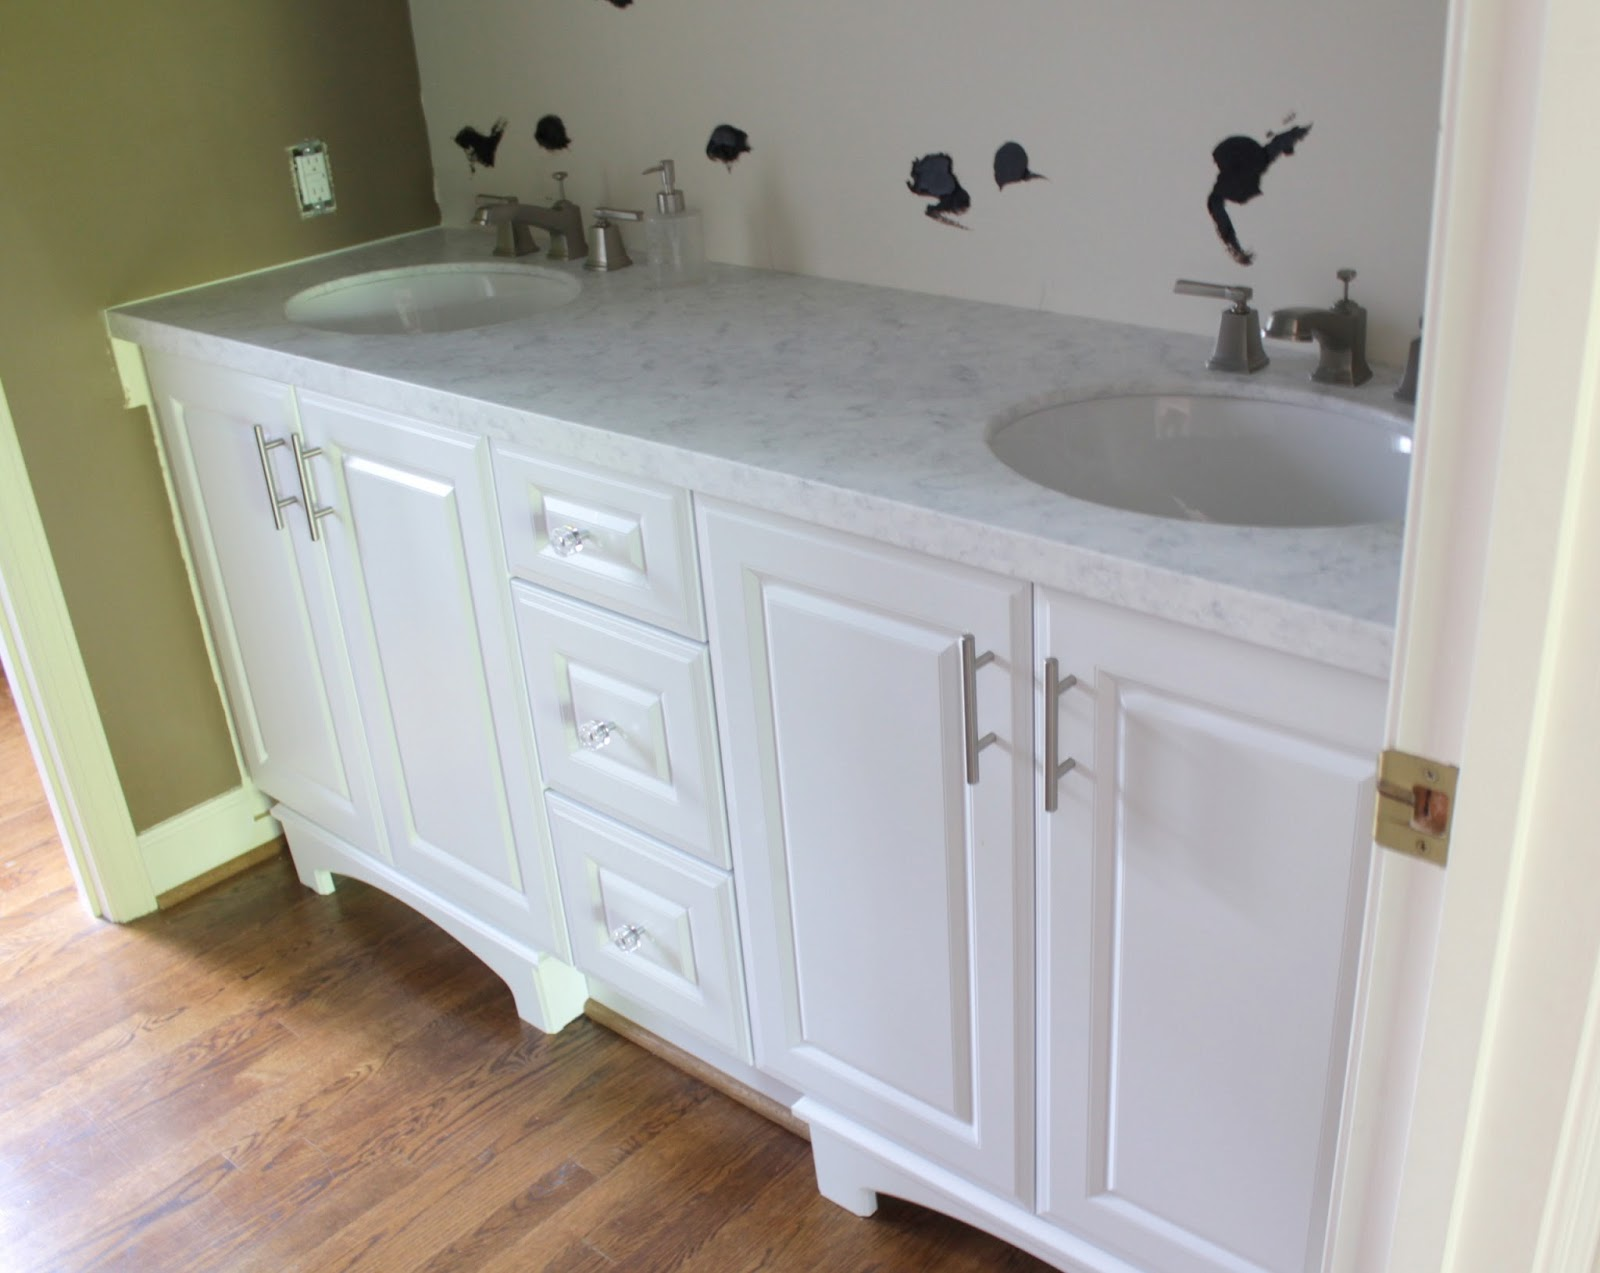 white wooden bathroom vanities with tops with silver handle and double sinks and faucets on wooden floor matched with white wall for bathroom decor ideas